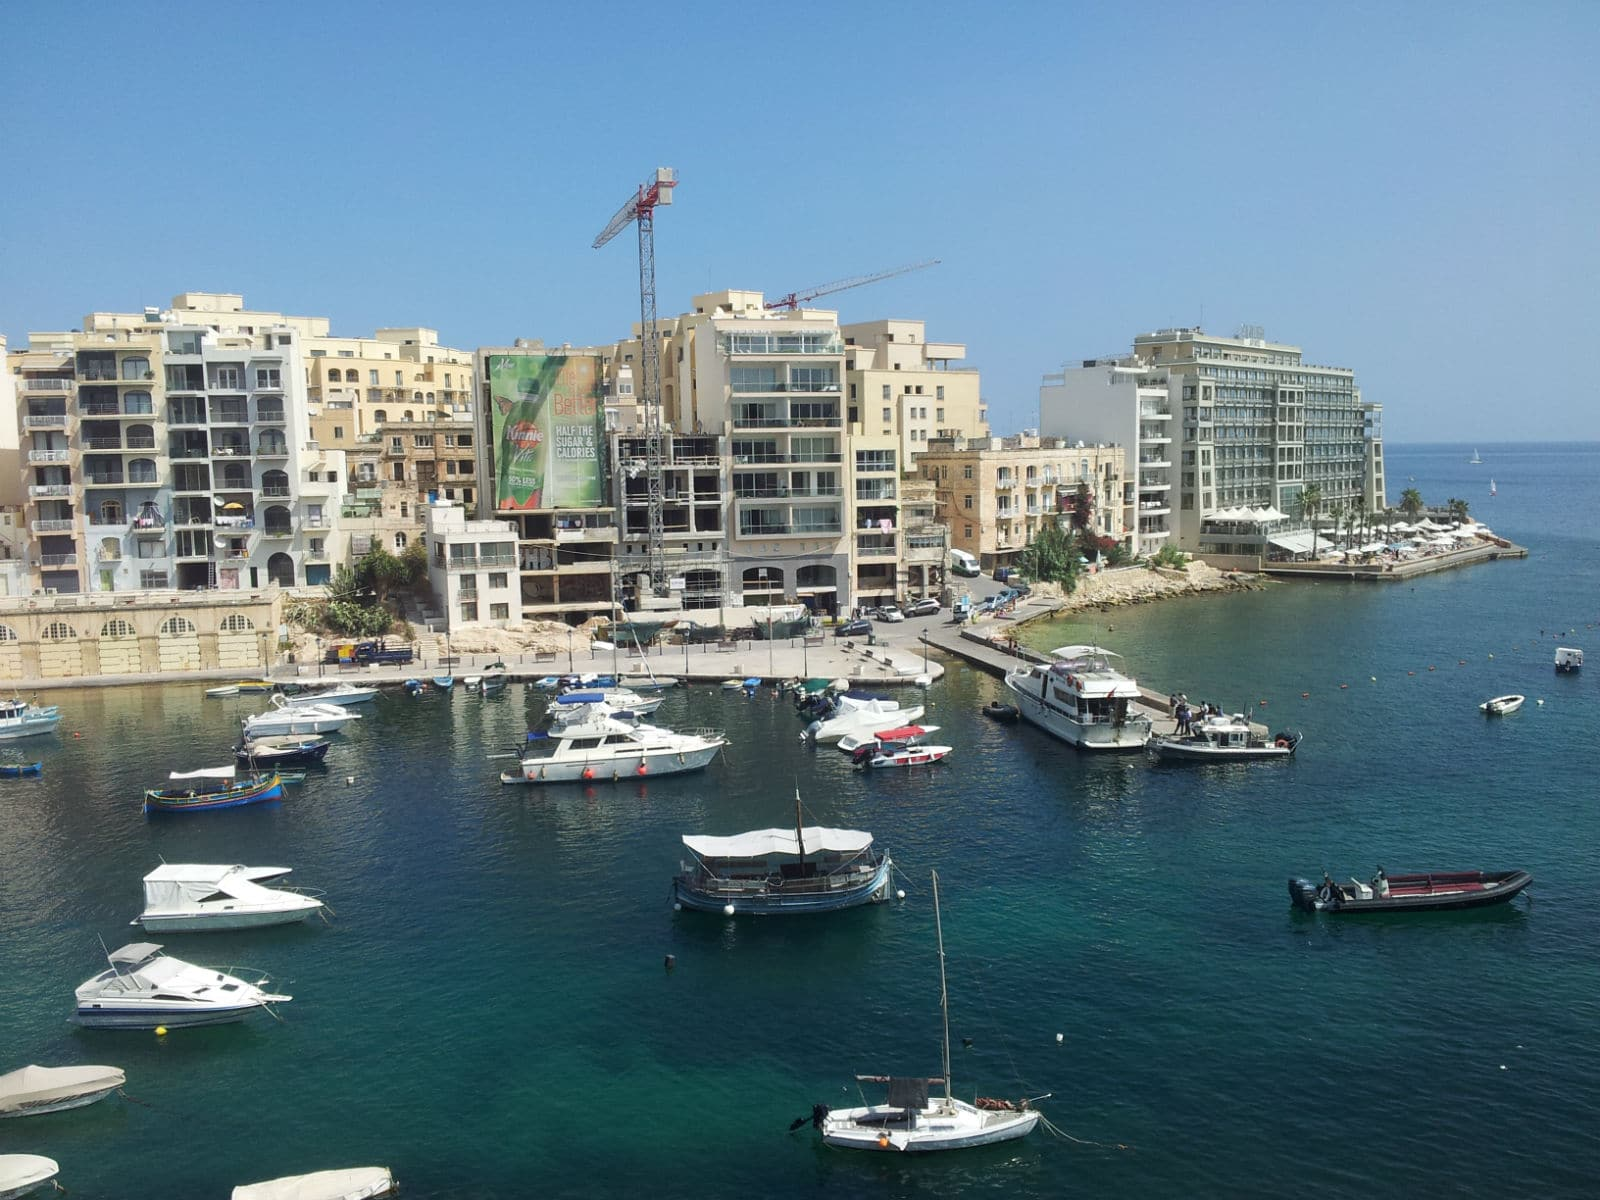 Seafront self catering holiday apartments in St Julian's (near Paceville)